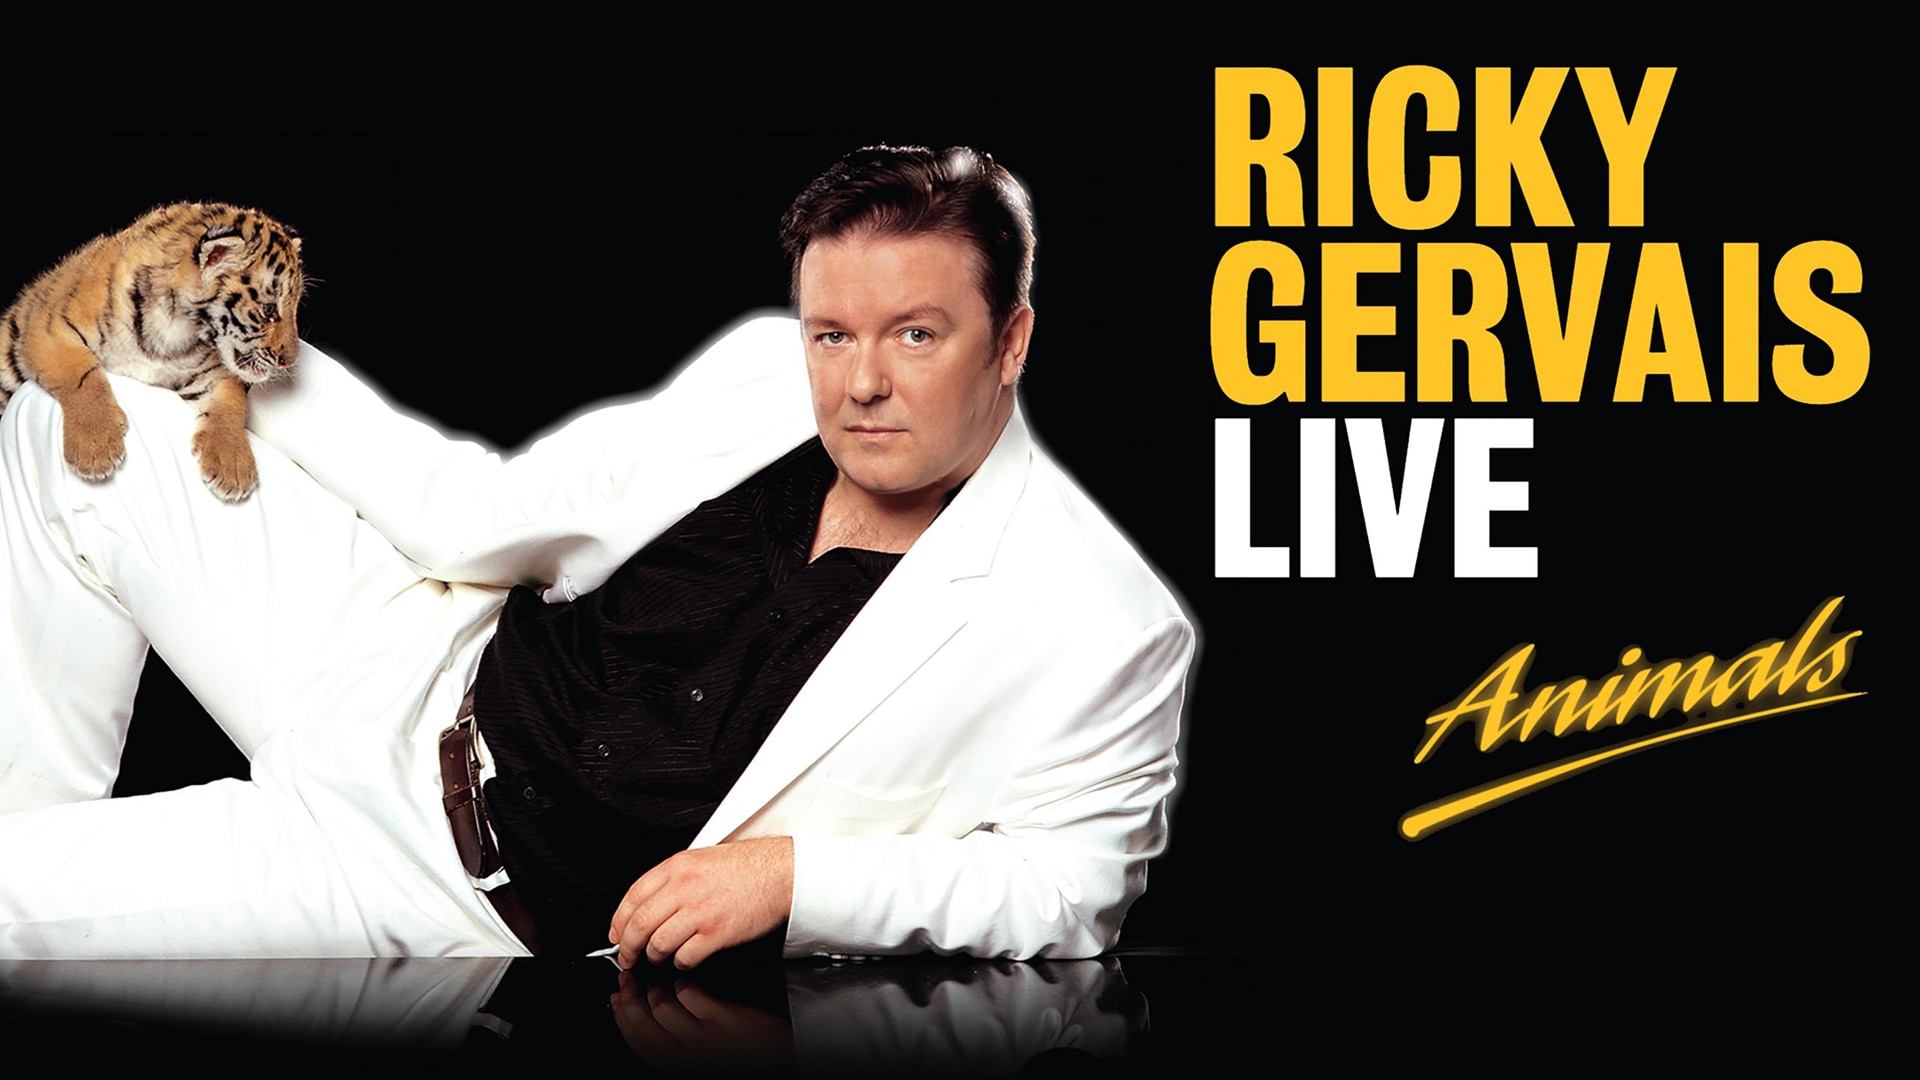 Ricky Gervais Live Animals